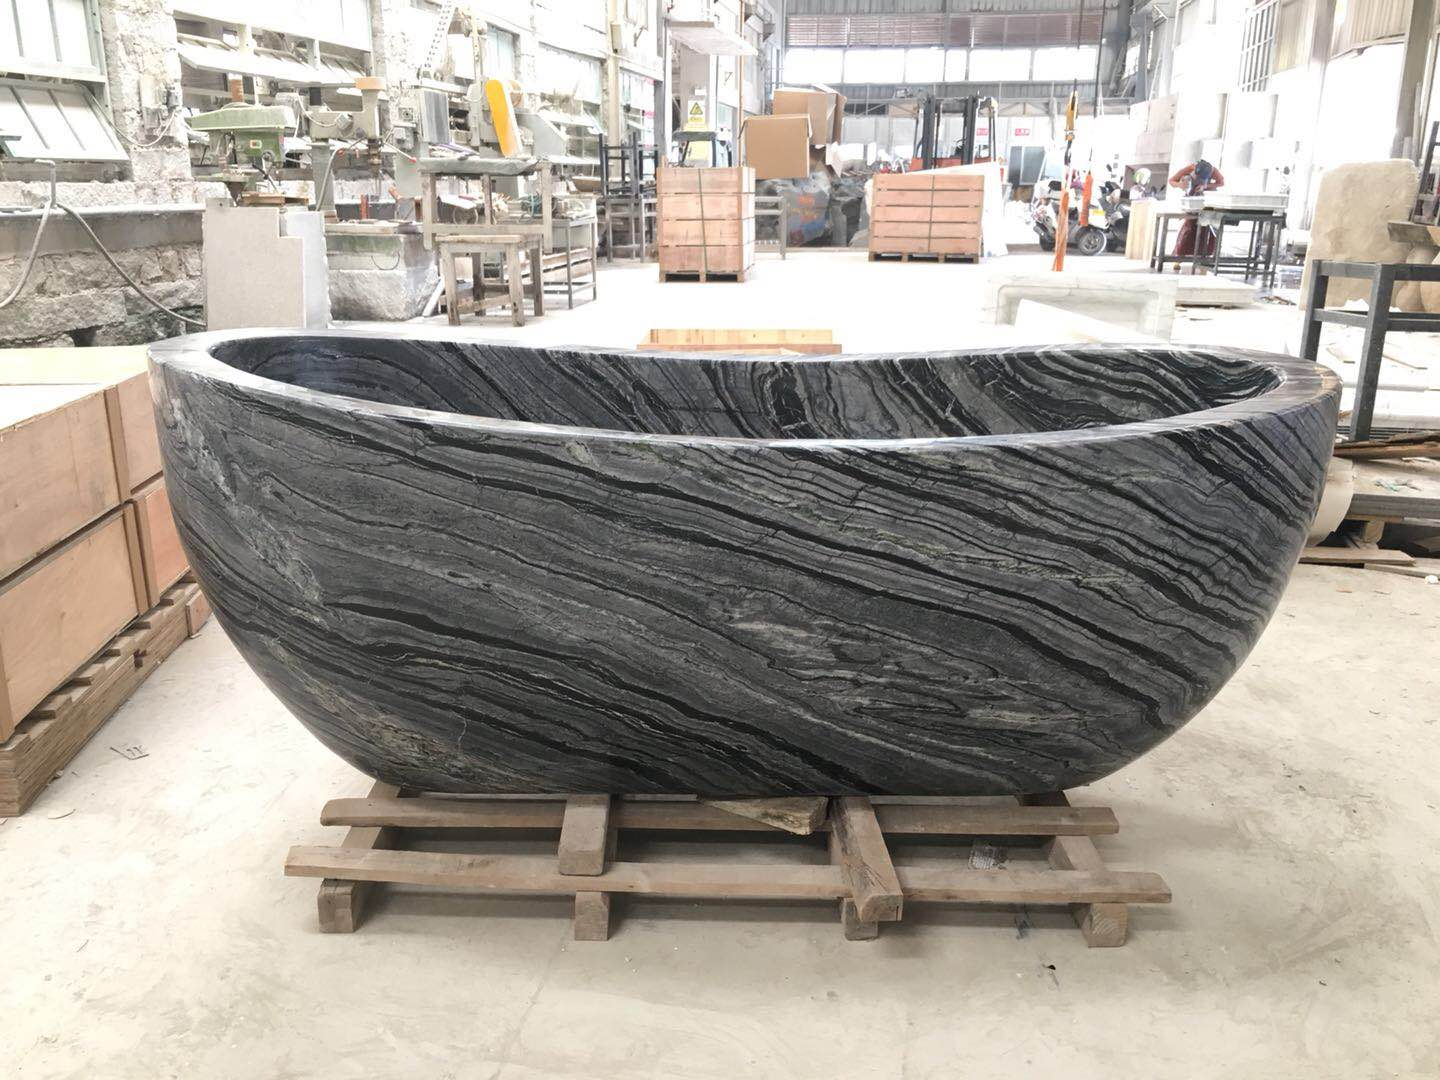 Marble bathtub,cultured marble bathtub,solid marble bathtub,black marble bathtub,cultured marble bathtub cost,marble bathtub price